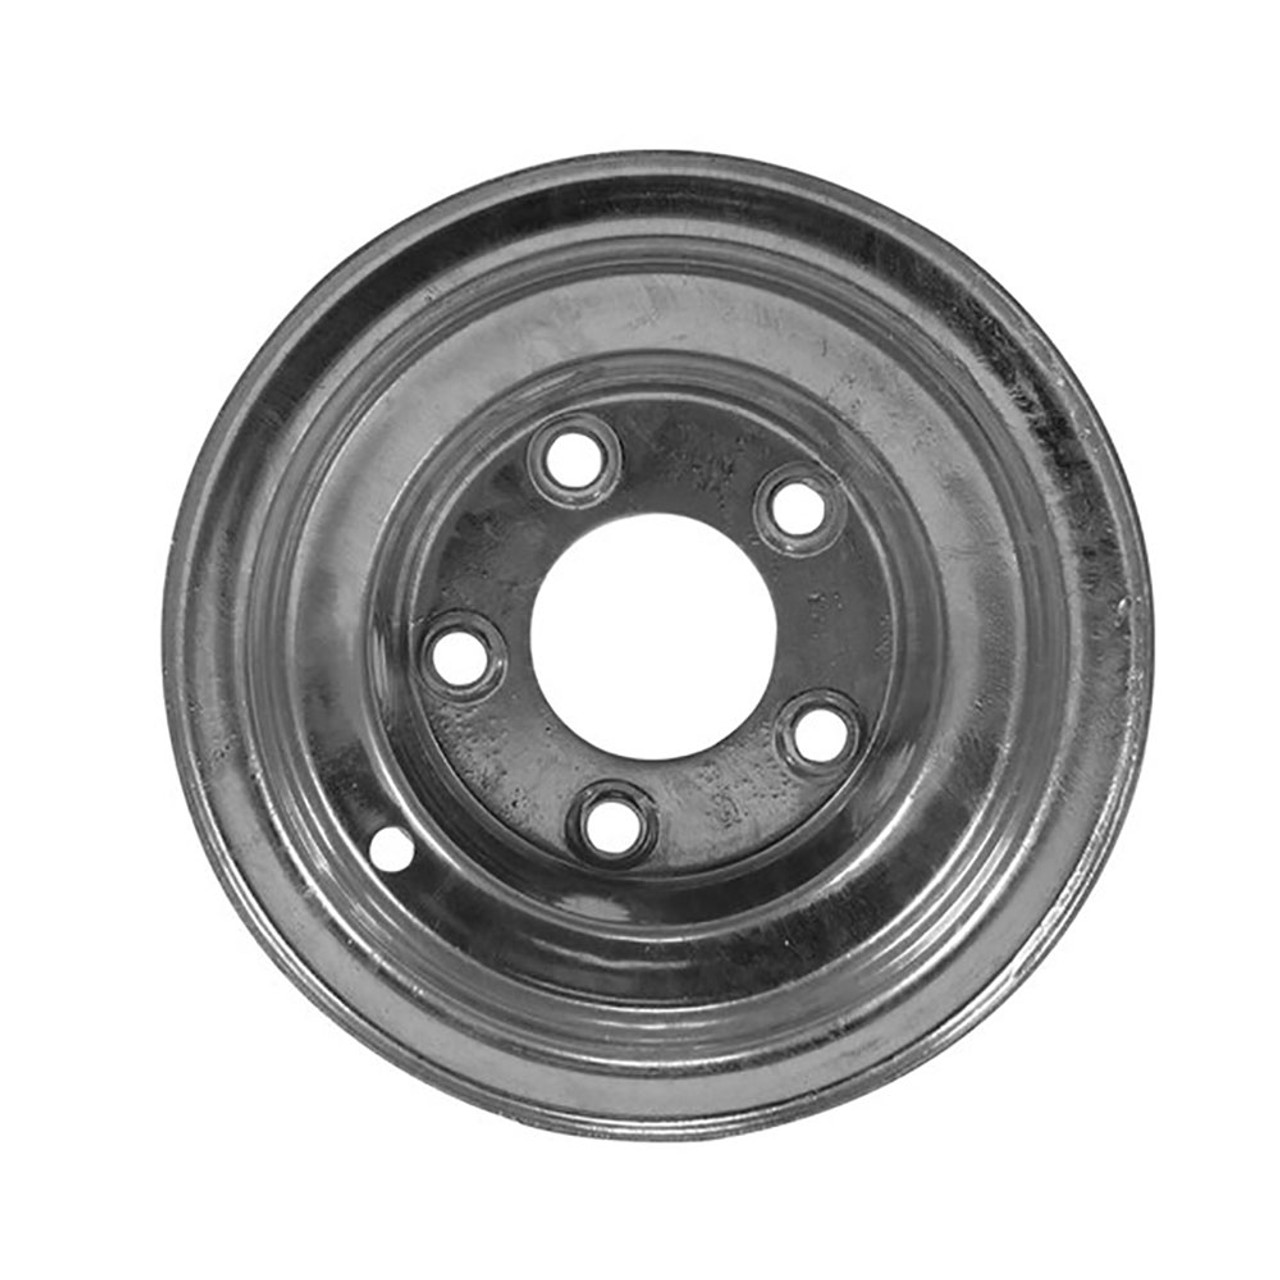 "8X7 5-Lug on 4.5"" Galvanized Trailer Wheel"